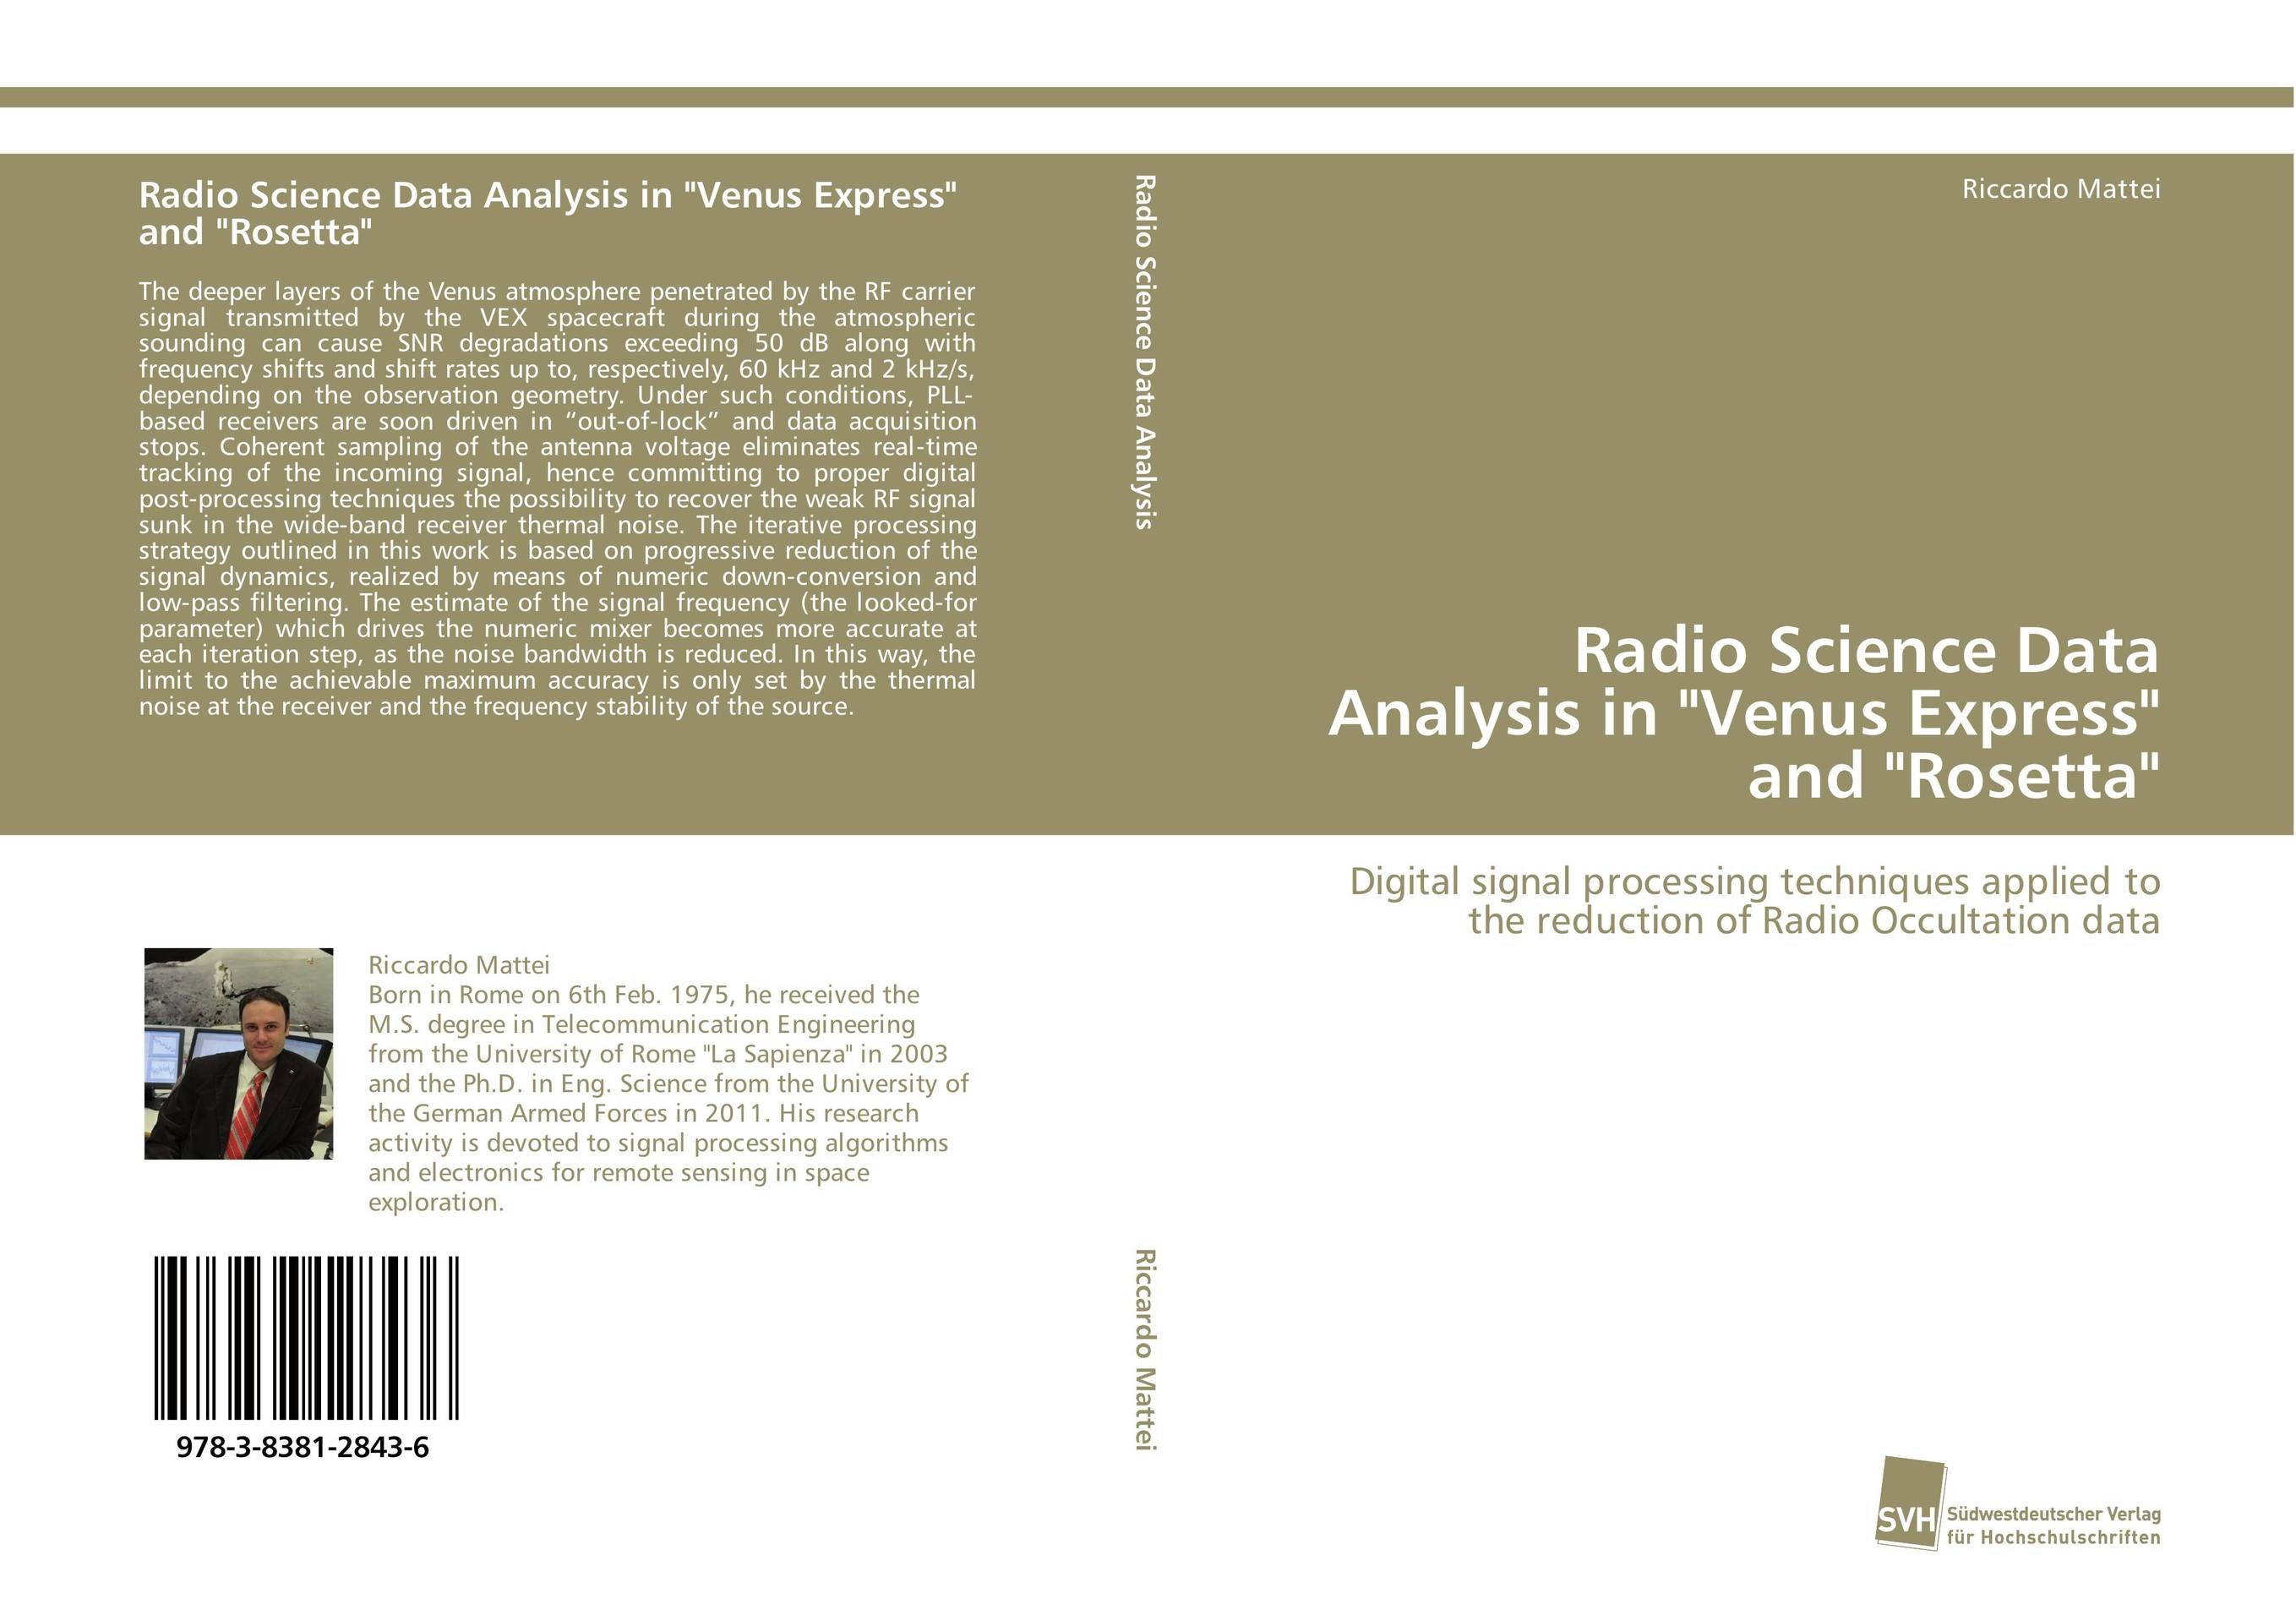 Radio Science Data Analysis in Venus Express and Rosetta voluntary associations in tsarist russia – science patriotism and civil society